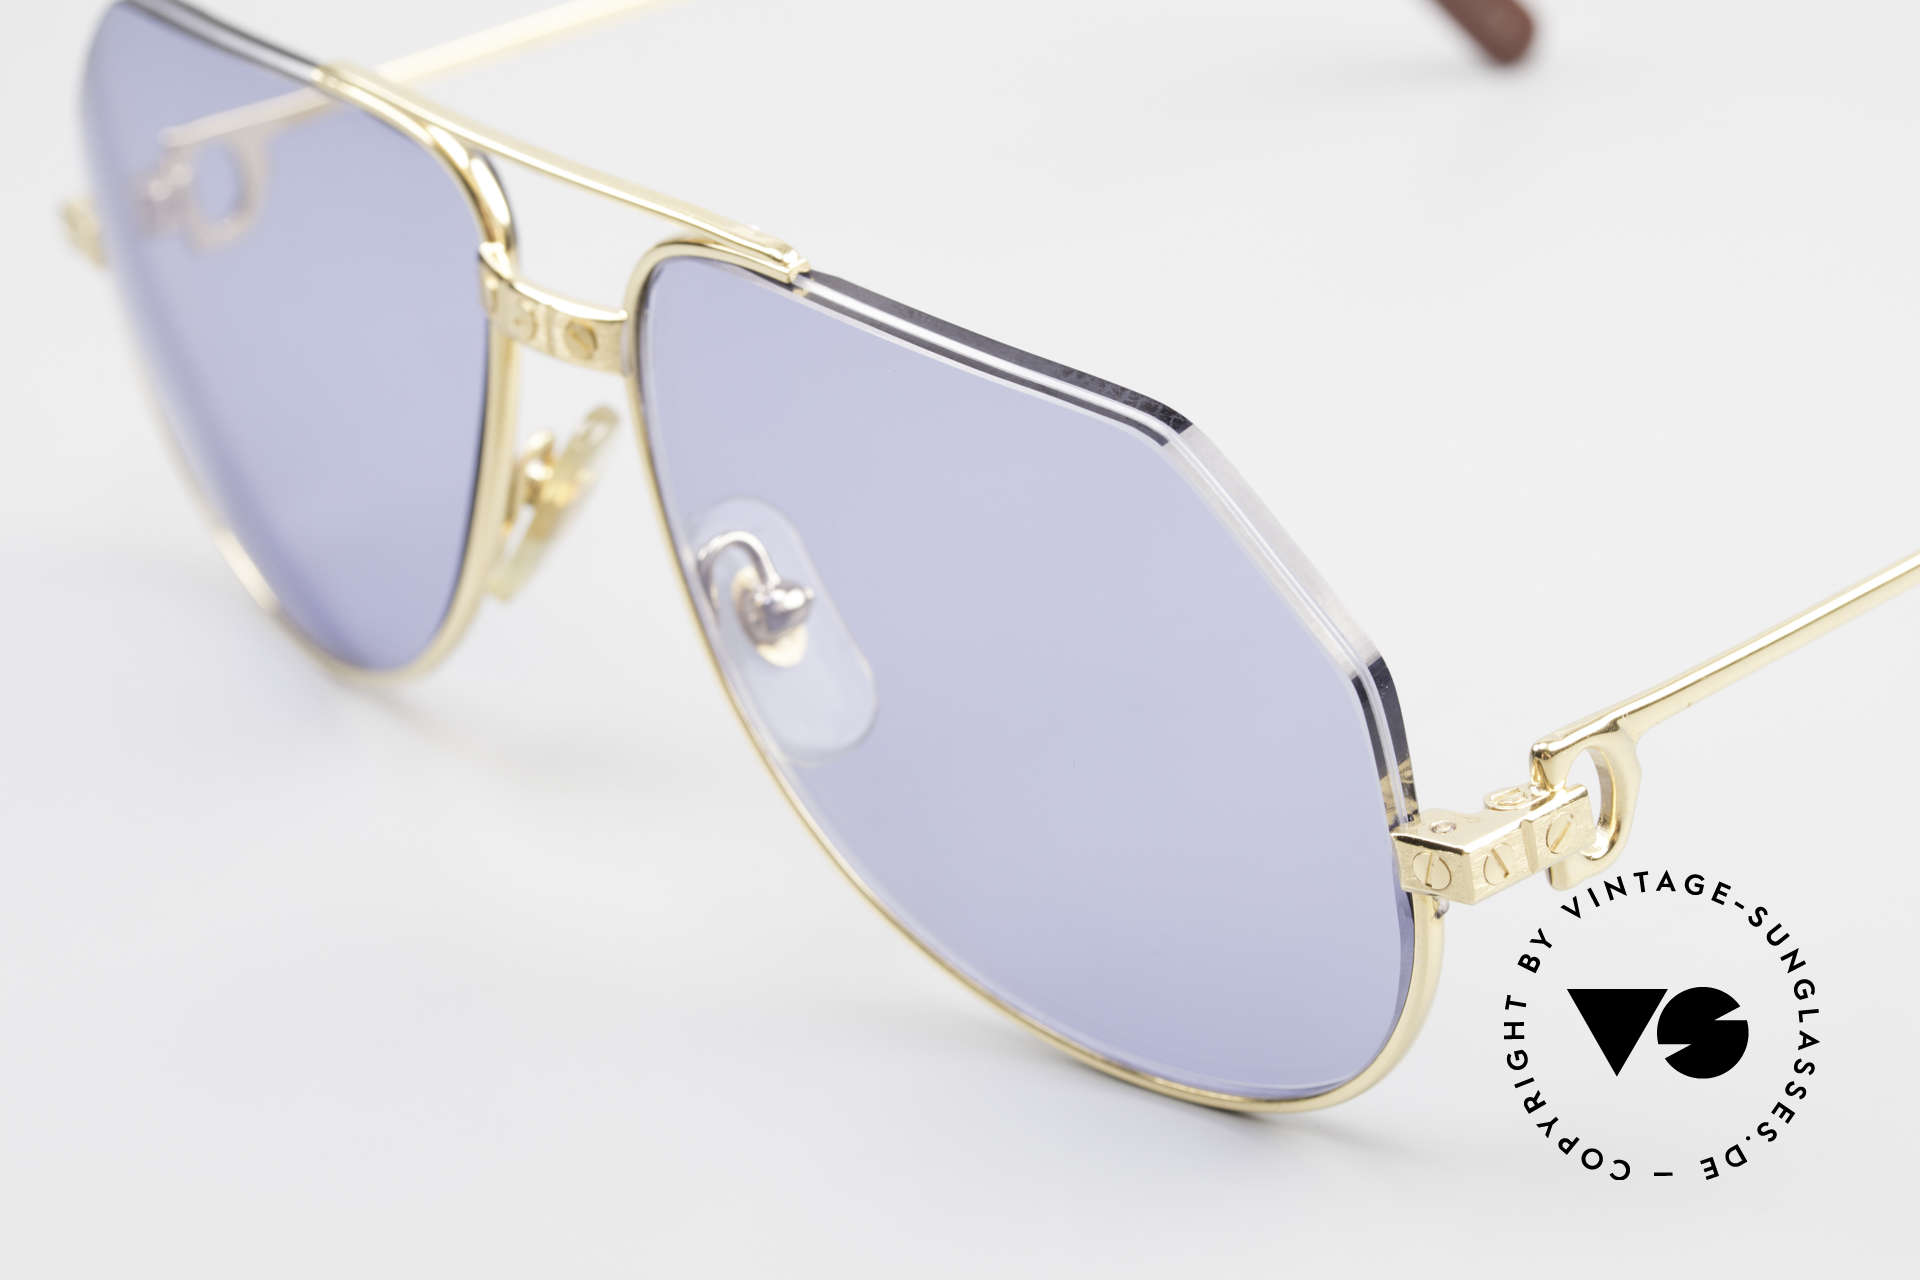 """Cartier Vendome Santos - S One Of A Kind Nylor And Gold, this makes the glasses lighter and more """"edgy"""" / unique, Made for Men"""